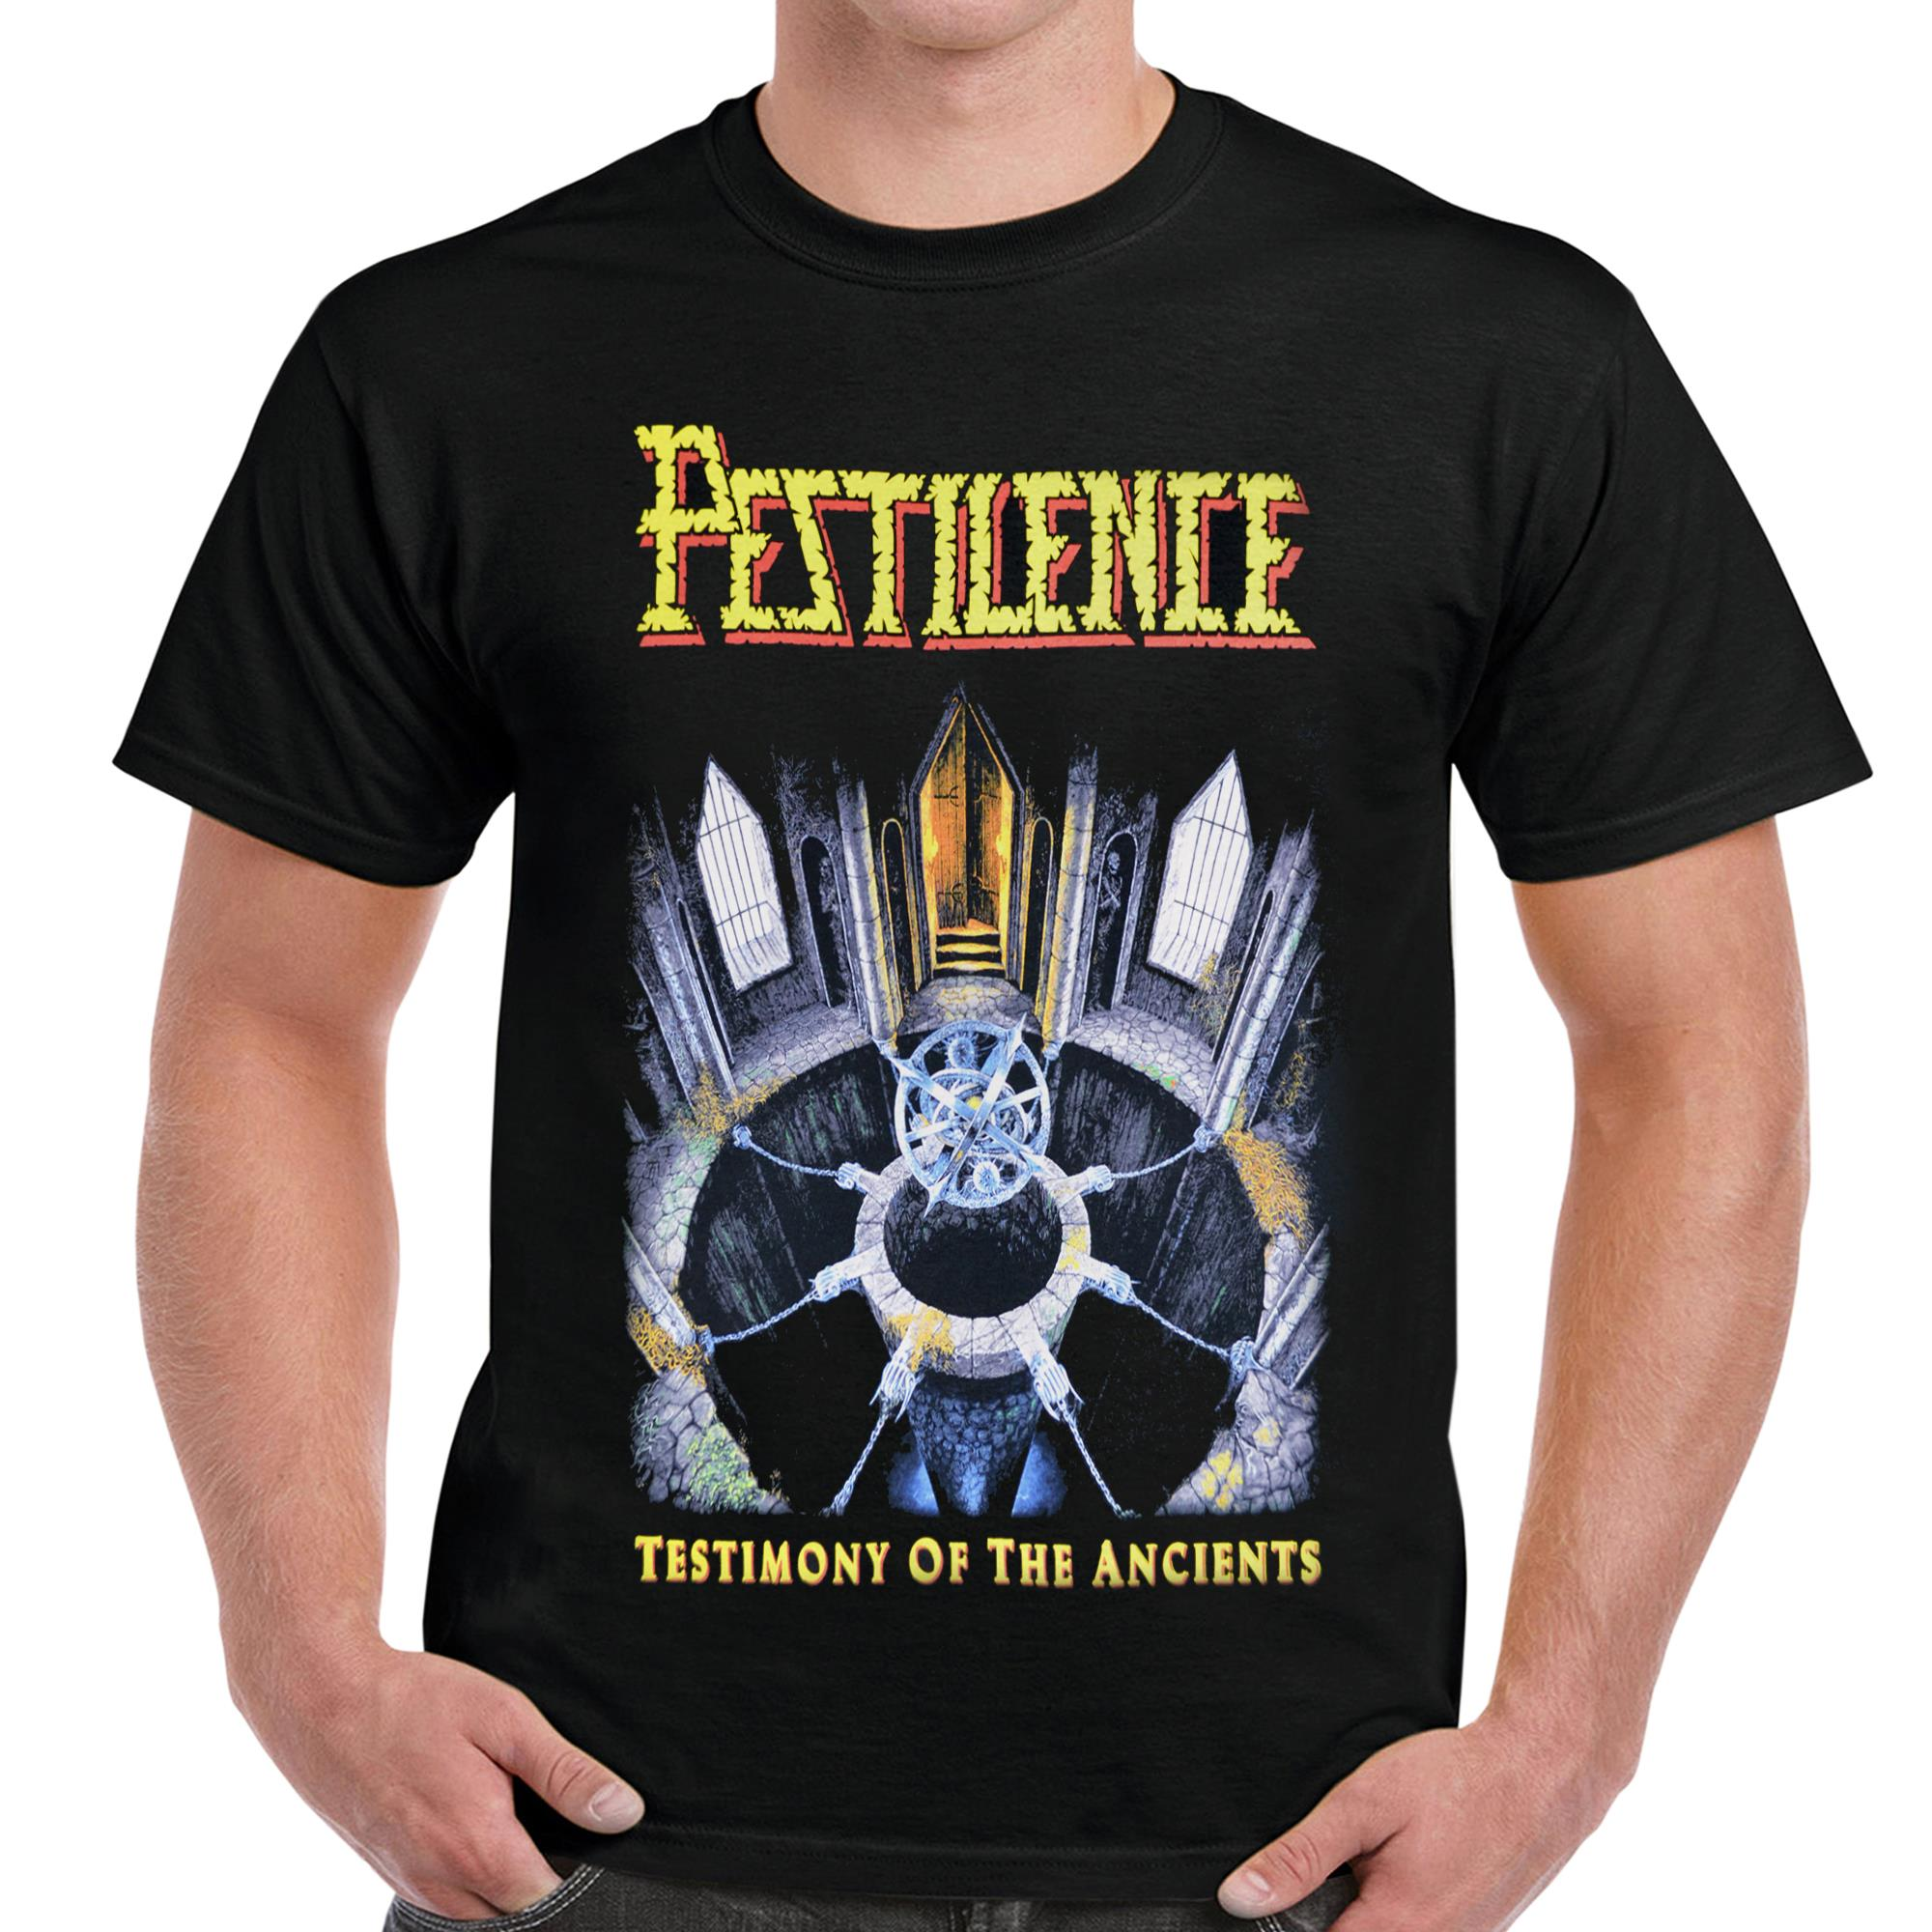 Testimony of the Ancients T-shirt